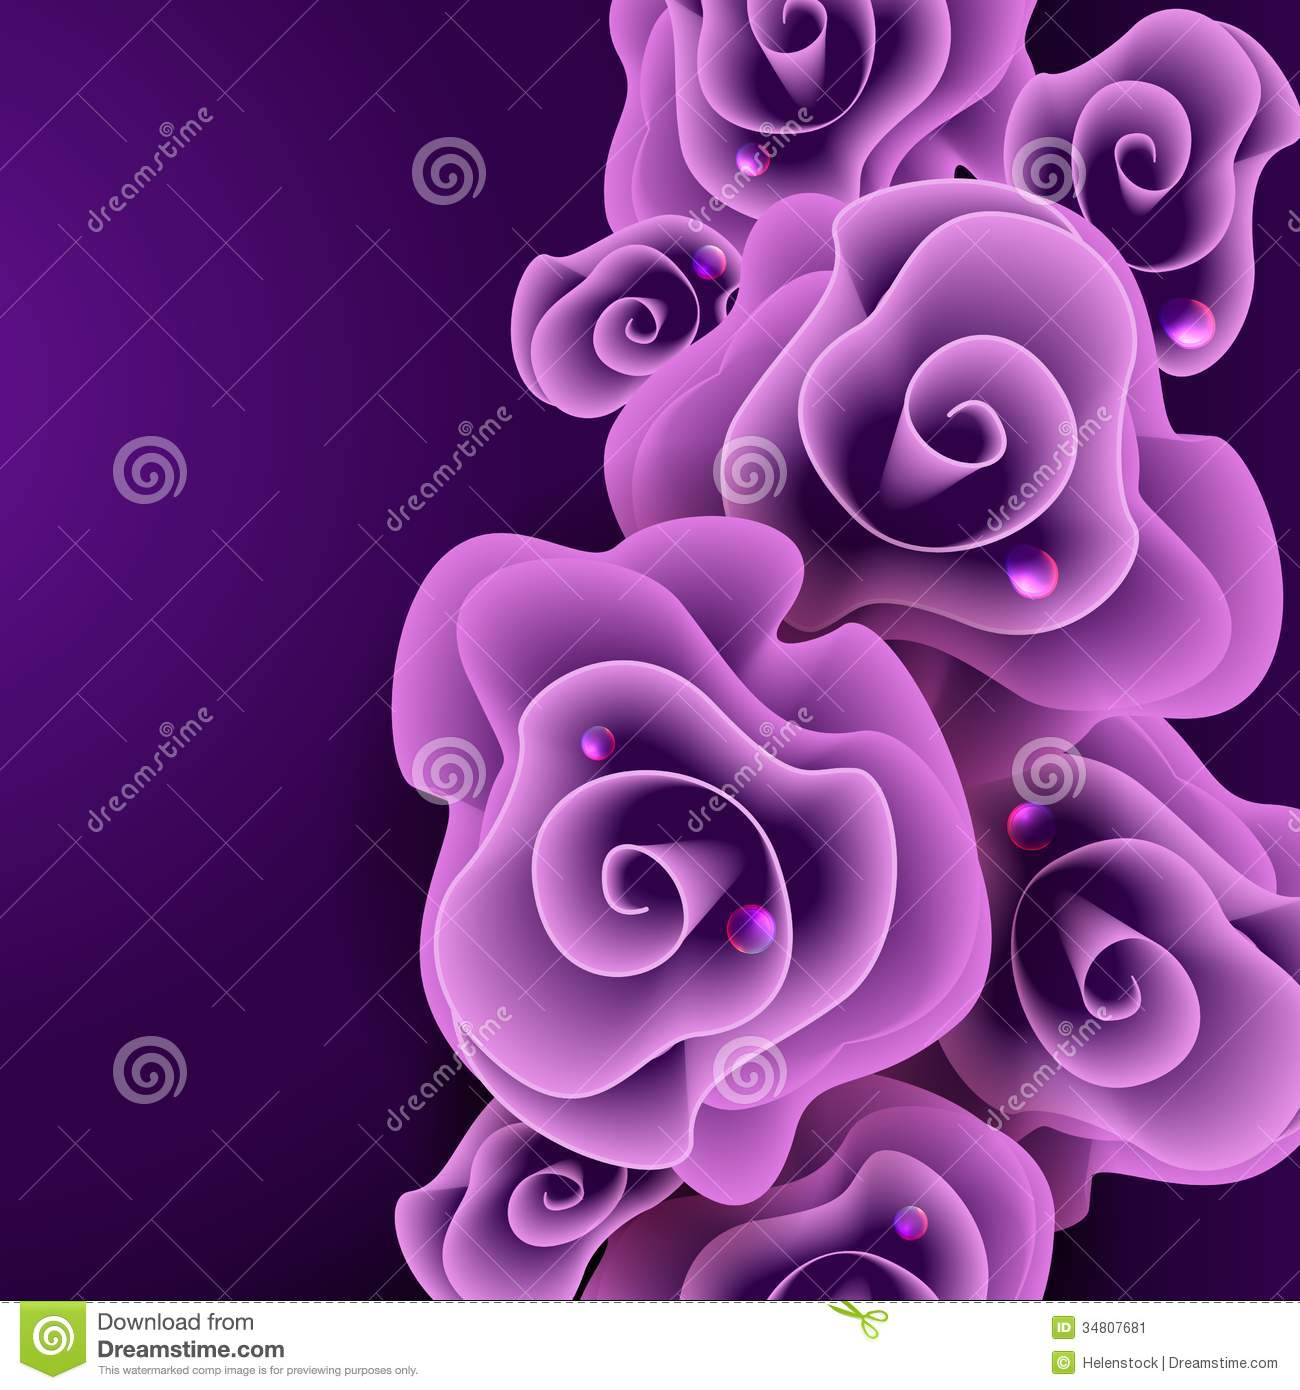 Birthday Cake Wallpaper 3d Download Purple Rose Background Stock Vector Illustration Of